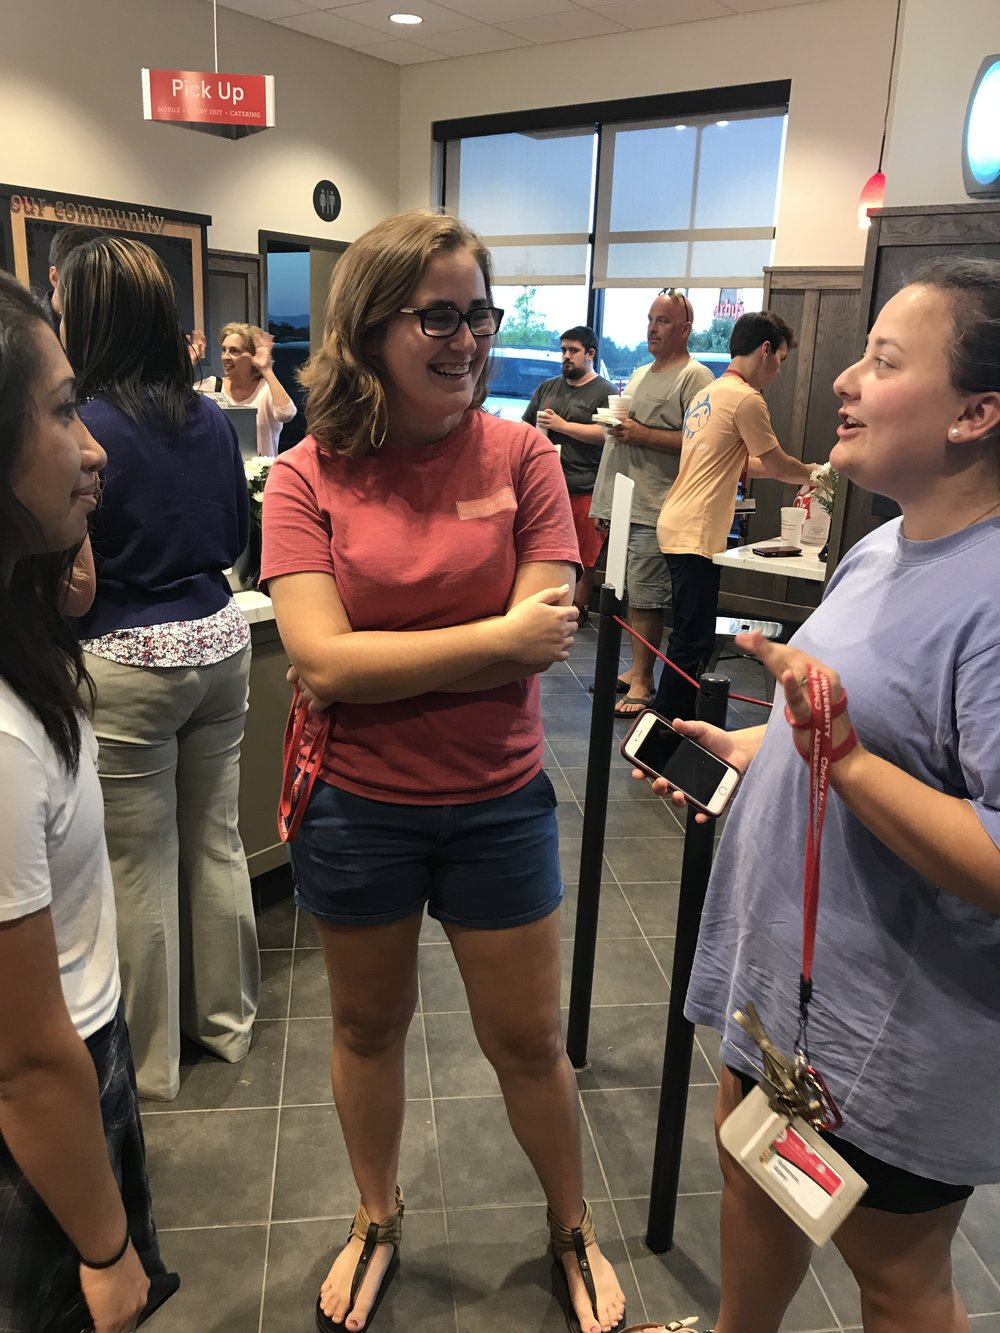 Paola Martz (freshman), Marissa Holst (freshman) and Abbey Roberson (freshman) eagerly wait in line to order at the brand newChick-fil-A.